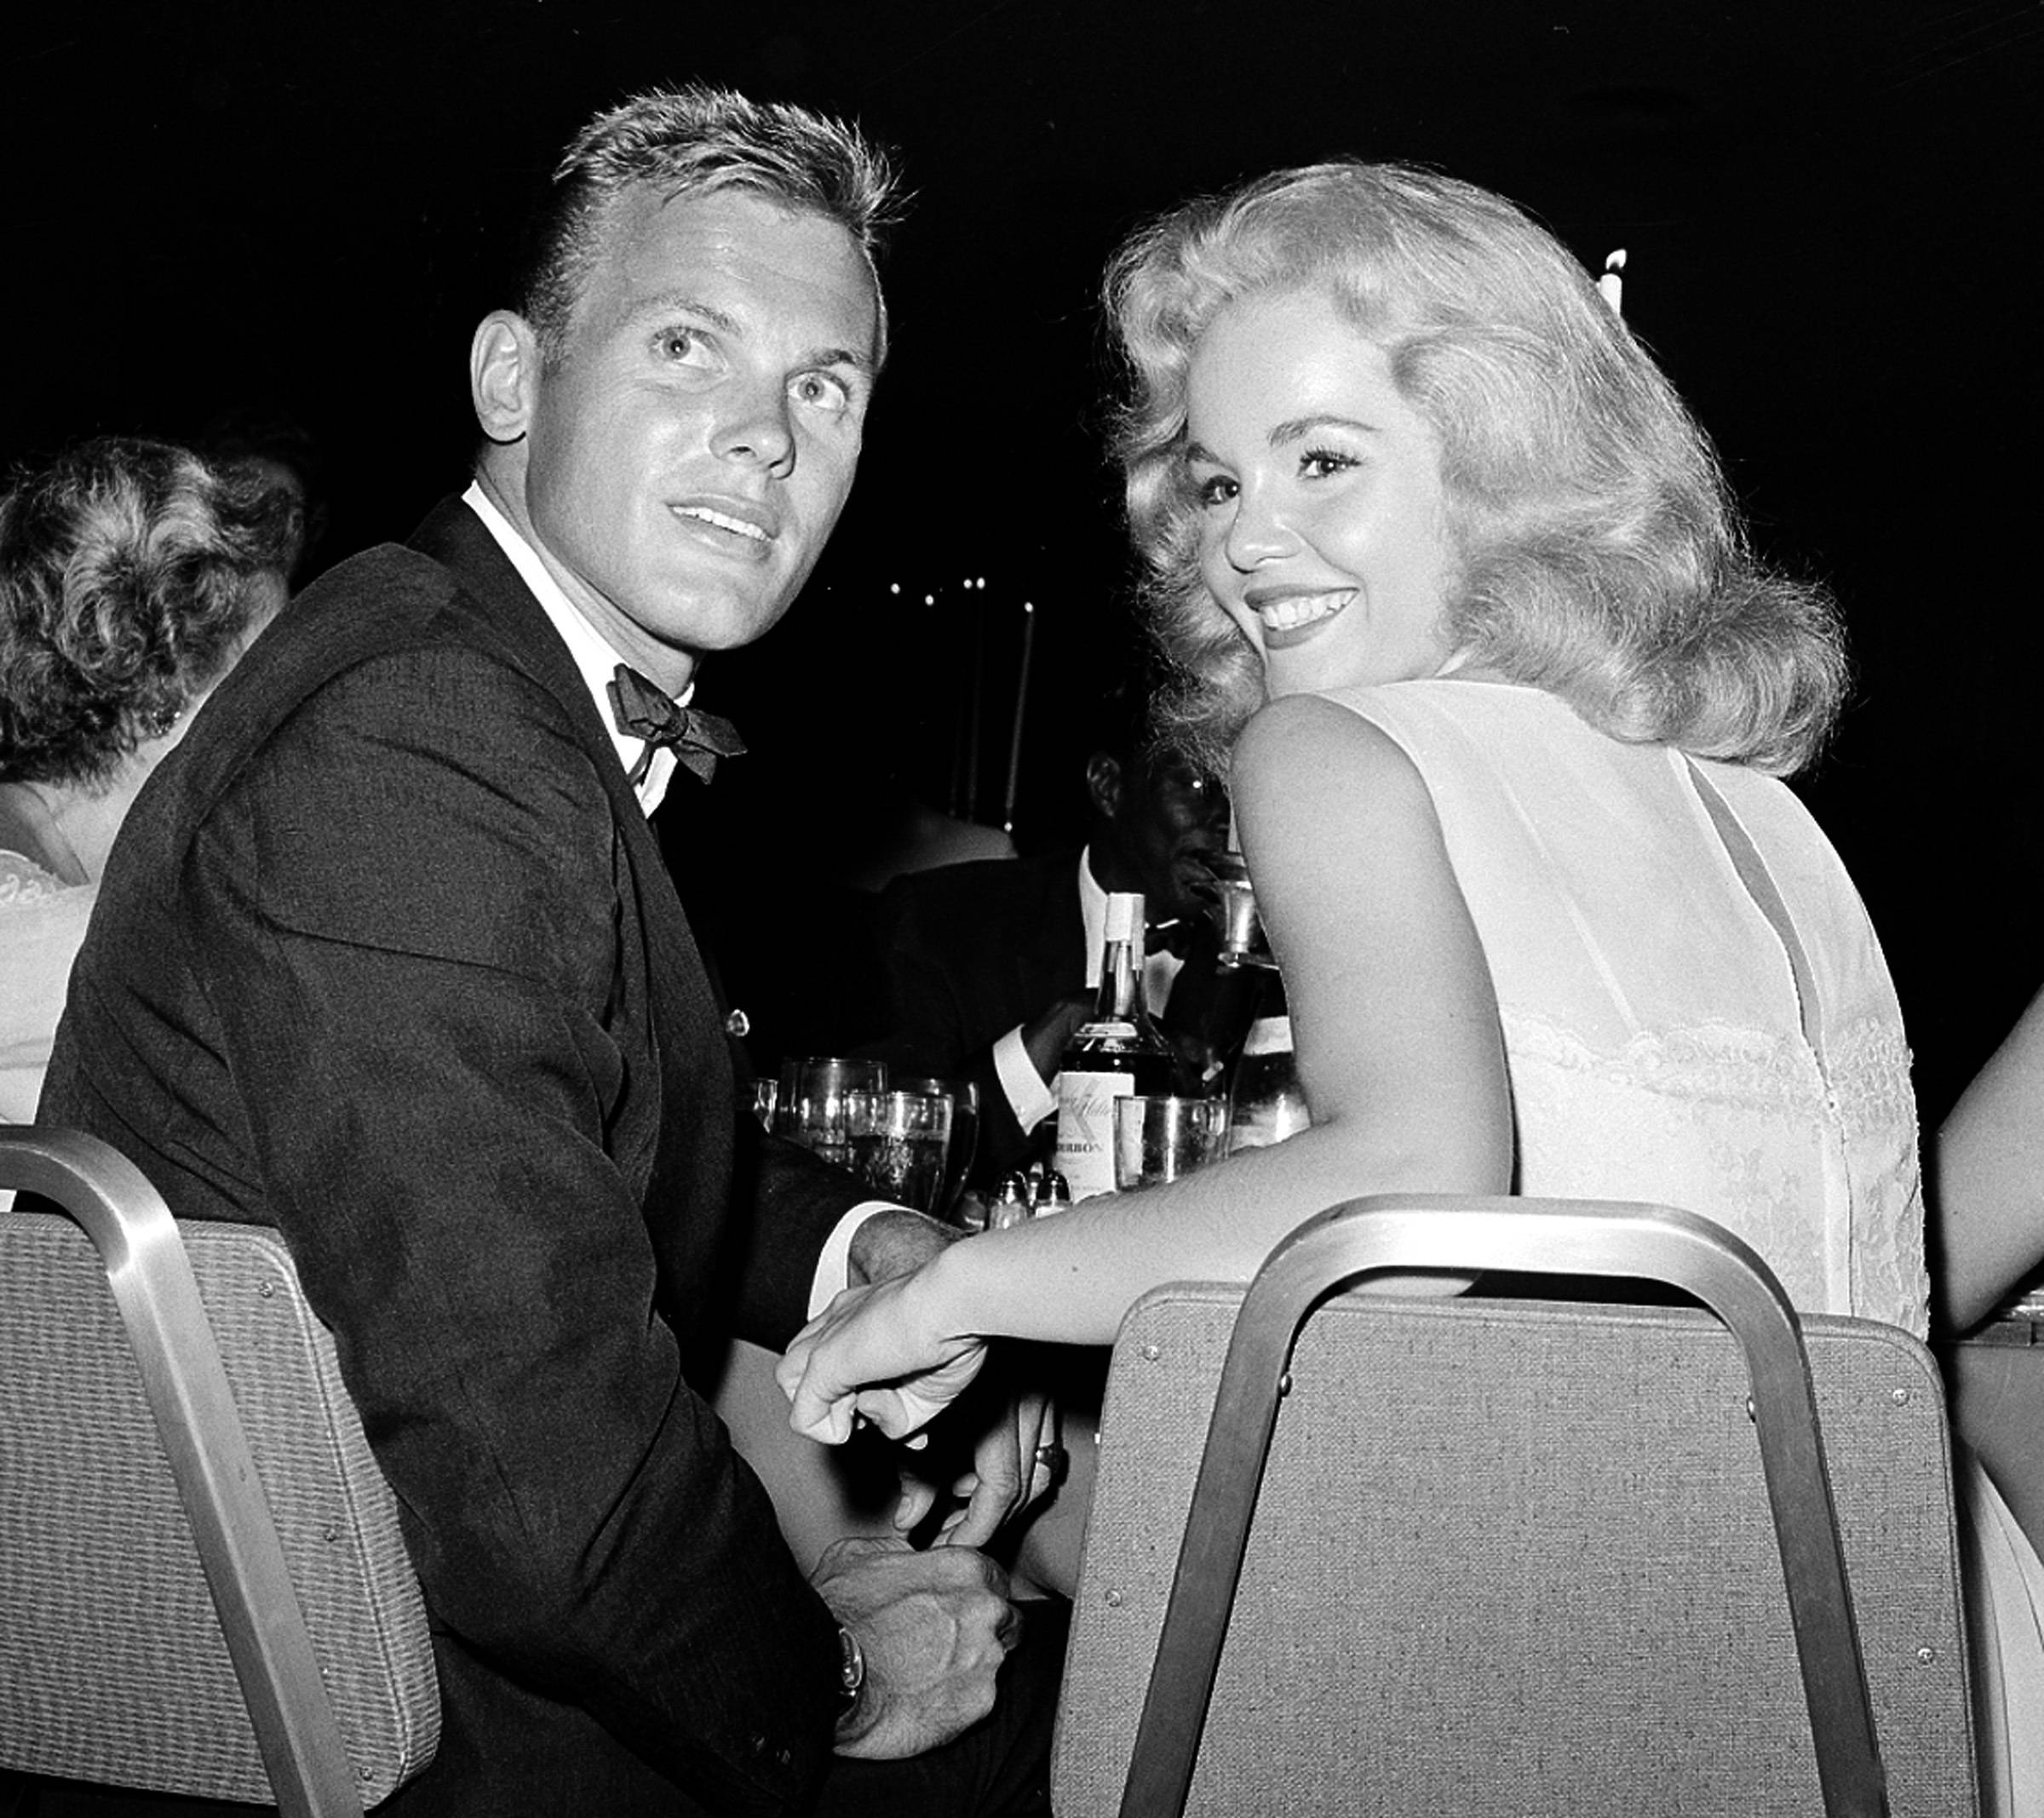 FILE - This July 27, 1959 file photo shows actor Tab Hunter, left, with actress Tuesday Weld at a dinner reception in Los Angeles. Hunter, the blond actor and singer who was the heartthrob of millions of teenage girls in the 1950s, and received new attention decades later when he revealed that he was gay, died on Sunday, July 8, 2018. He was 86.